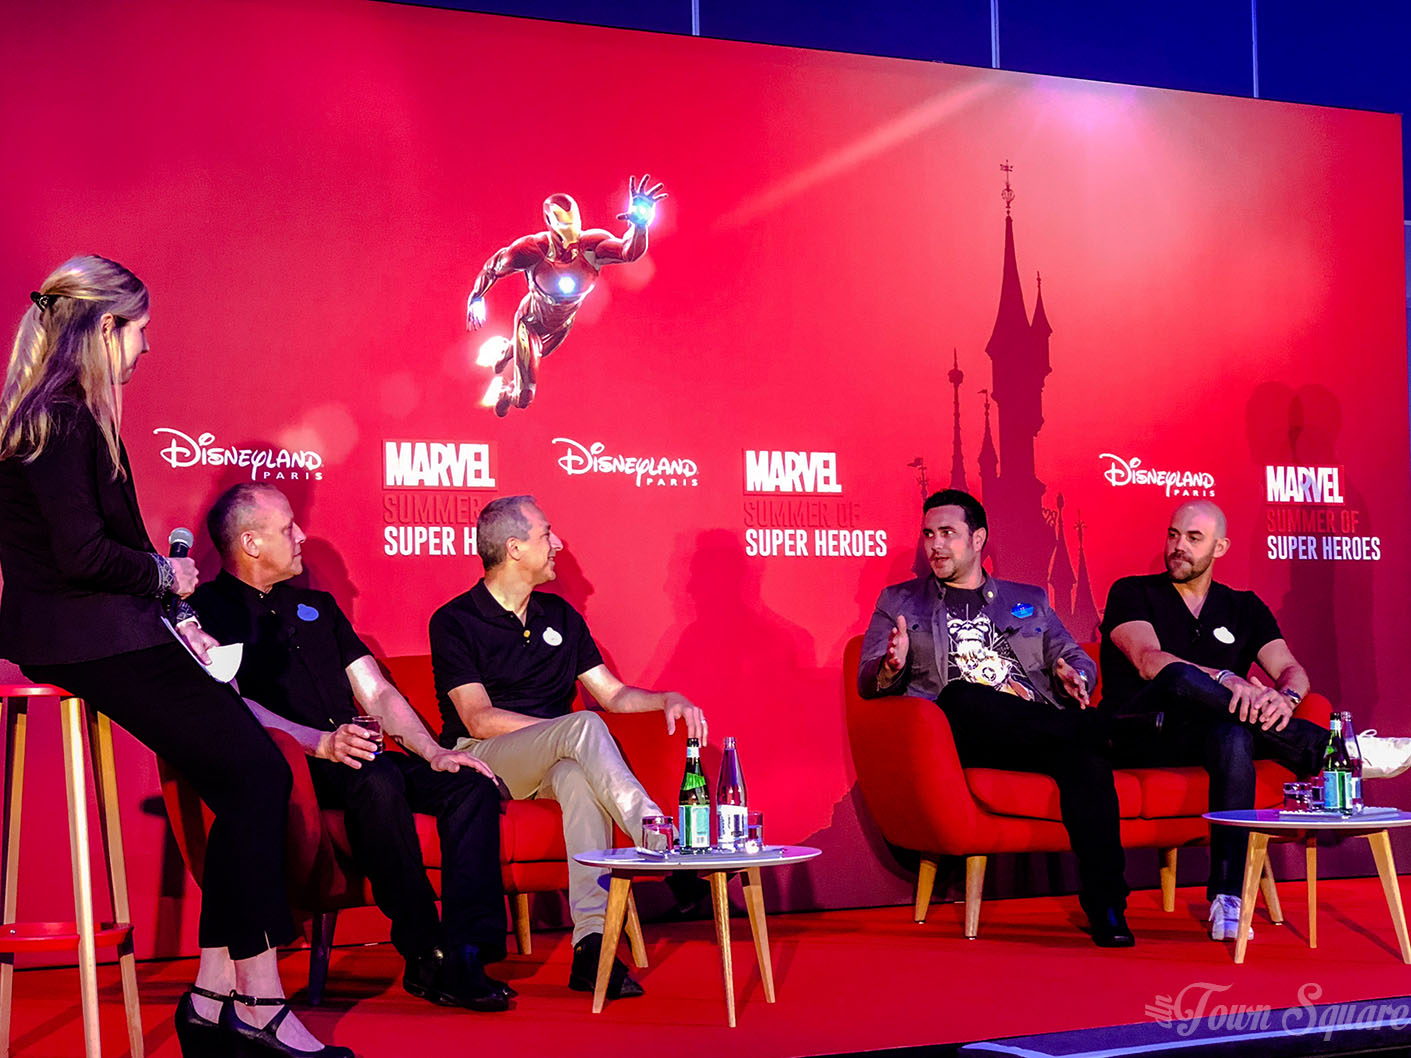 Marvel Summer of Super Heroes Press Conference at Disneyland Paris